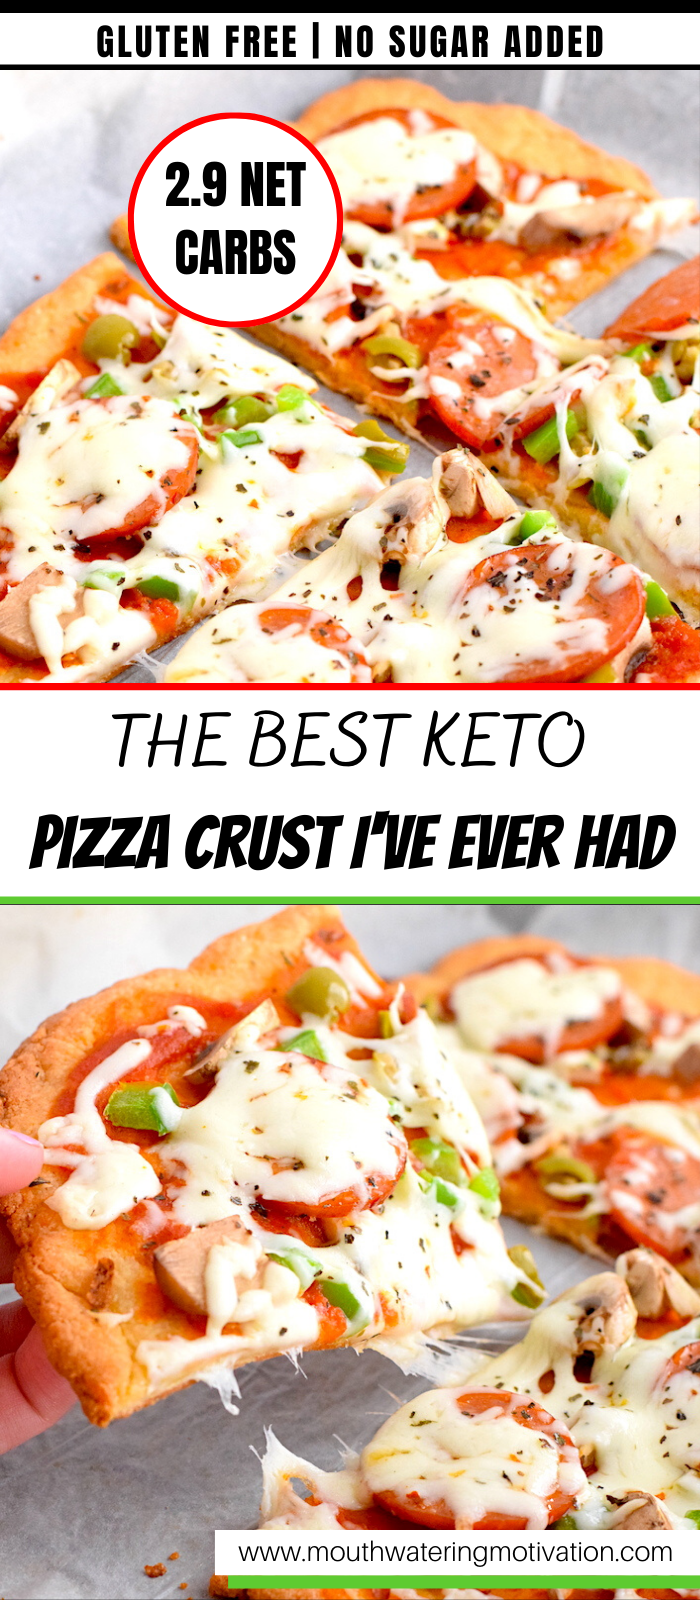 the best keto pizza crust i've ever made